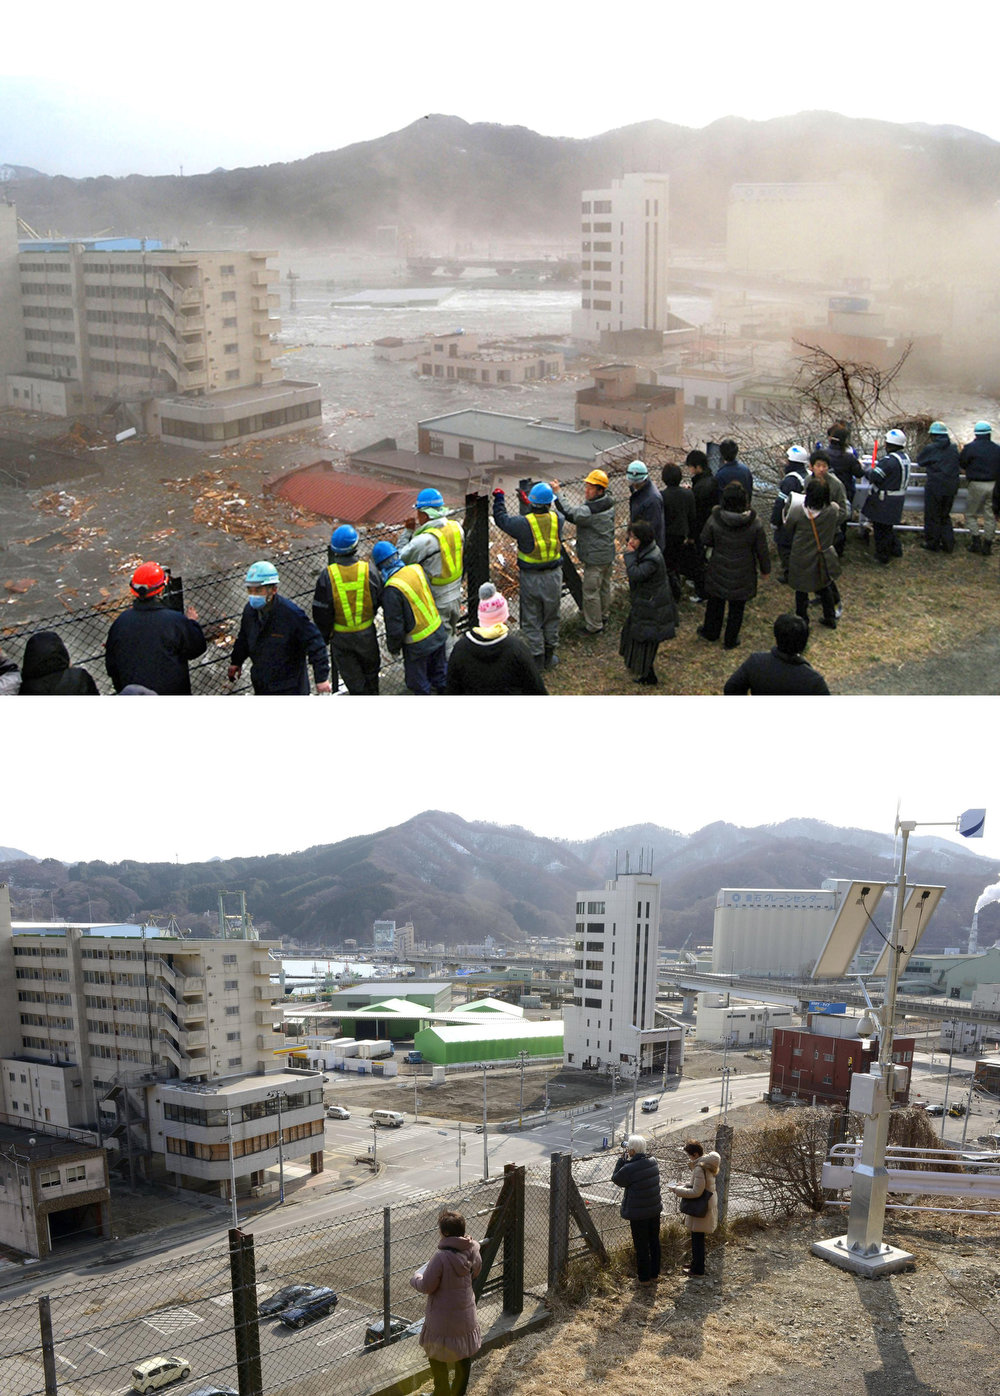 Description of . This combination photo taken March 11, 2011, top, by Kamaishi City, and Wednesday, Feb. 27, 2013 by Kyodo News, shows a view of Kamaishi, Iwate prefecture. Monday, March 11, 2013 will mark the 2-year anniversary of the earthquake and tsunami which devastated the northeastern Pacific coast of Japan. Japan's progress in rebuilding from the mountain of water that thundered over coastal sea walls, sweeping entire communities away and killing nearly 19,000 people, is mainly measured in barren foundations and empty spaces. Clearing of forests on higher ground to make space for relocation of survivors has barely begun. (AP Photo/Kyodo News)